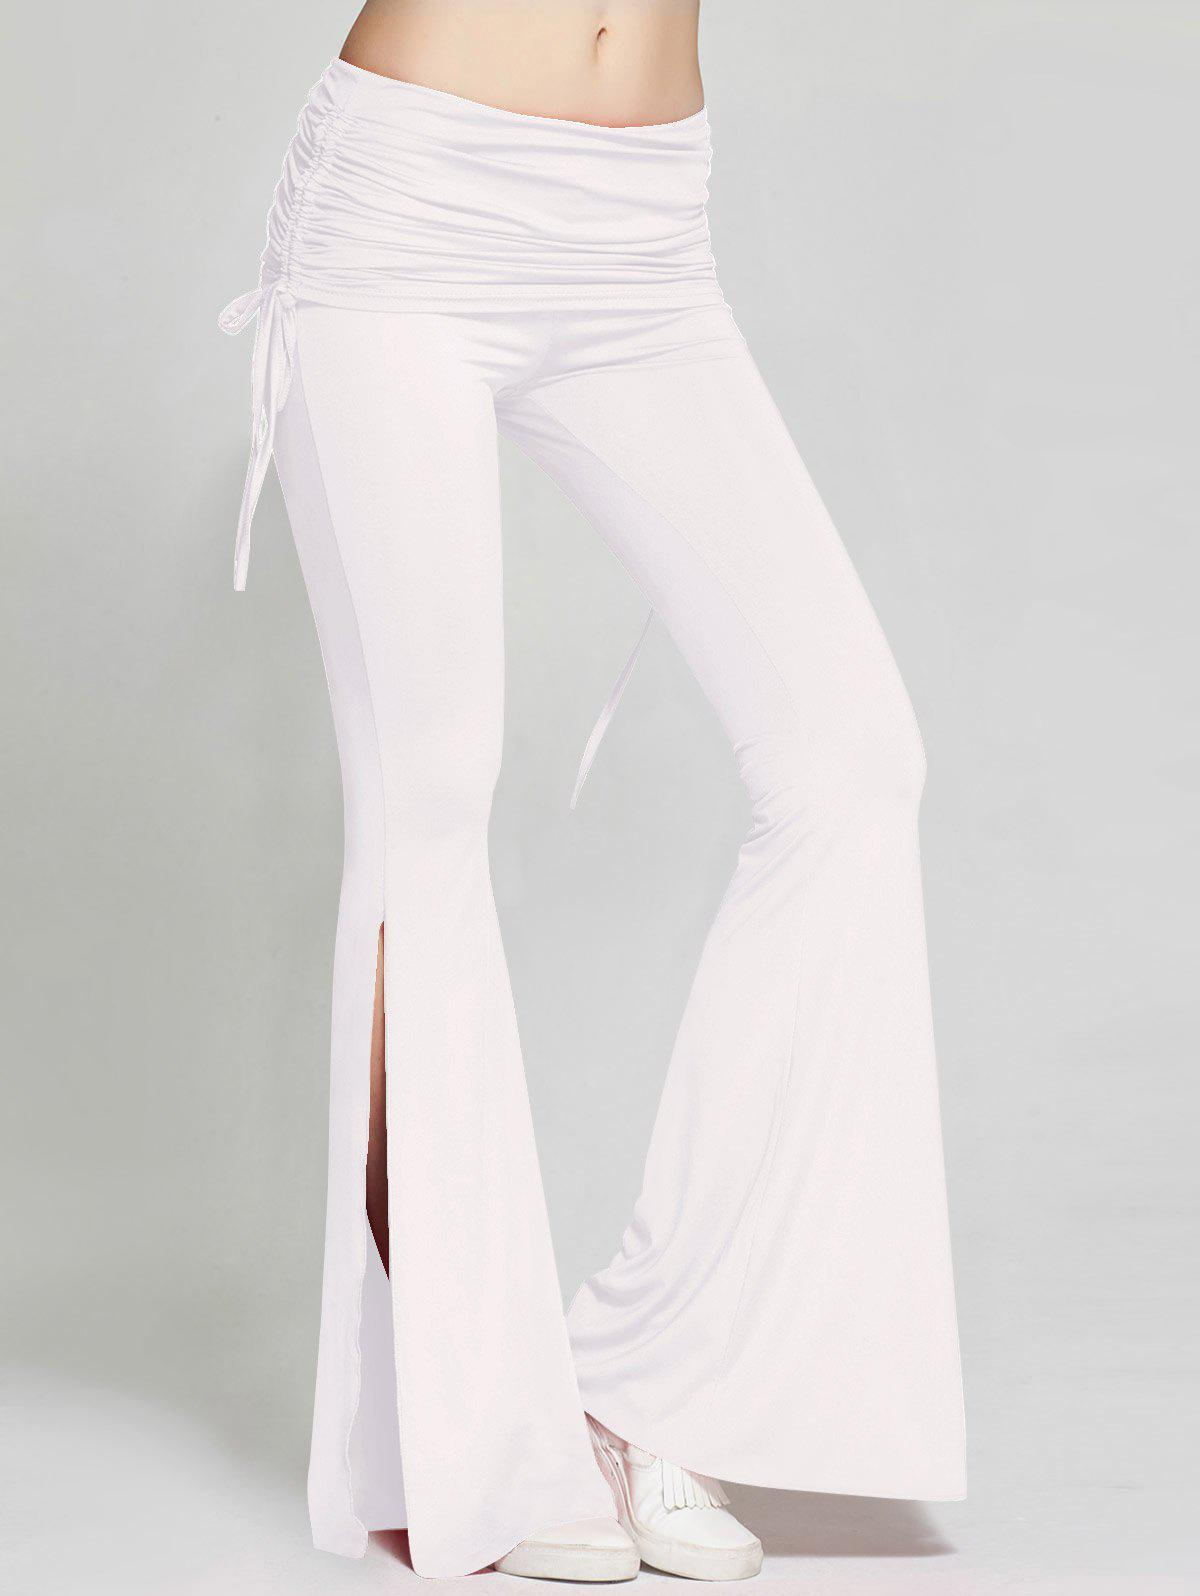 High Slit Flare Bell Bottom Yoga Pants games la lista della spesa